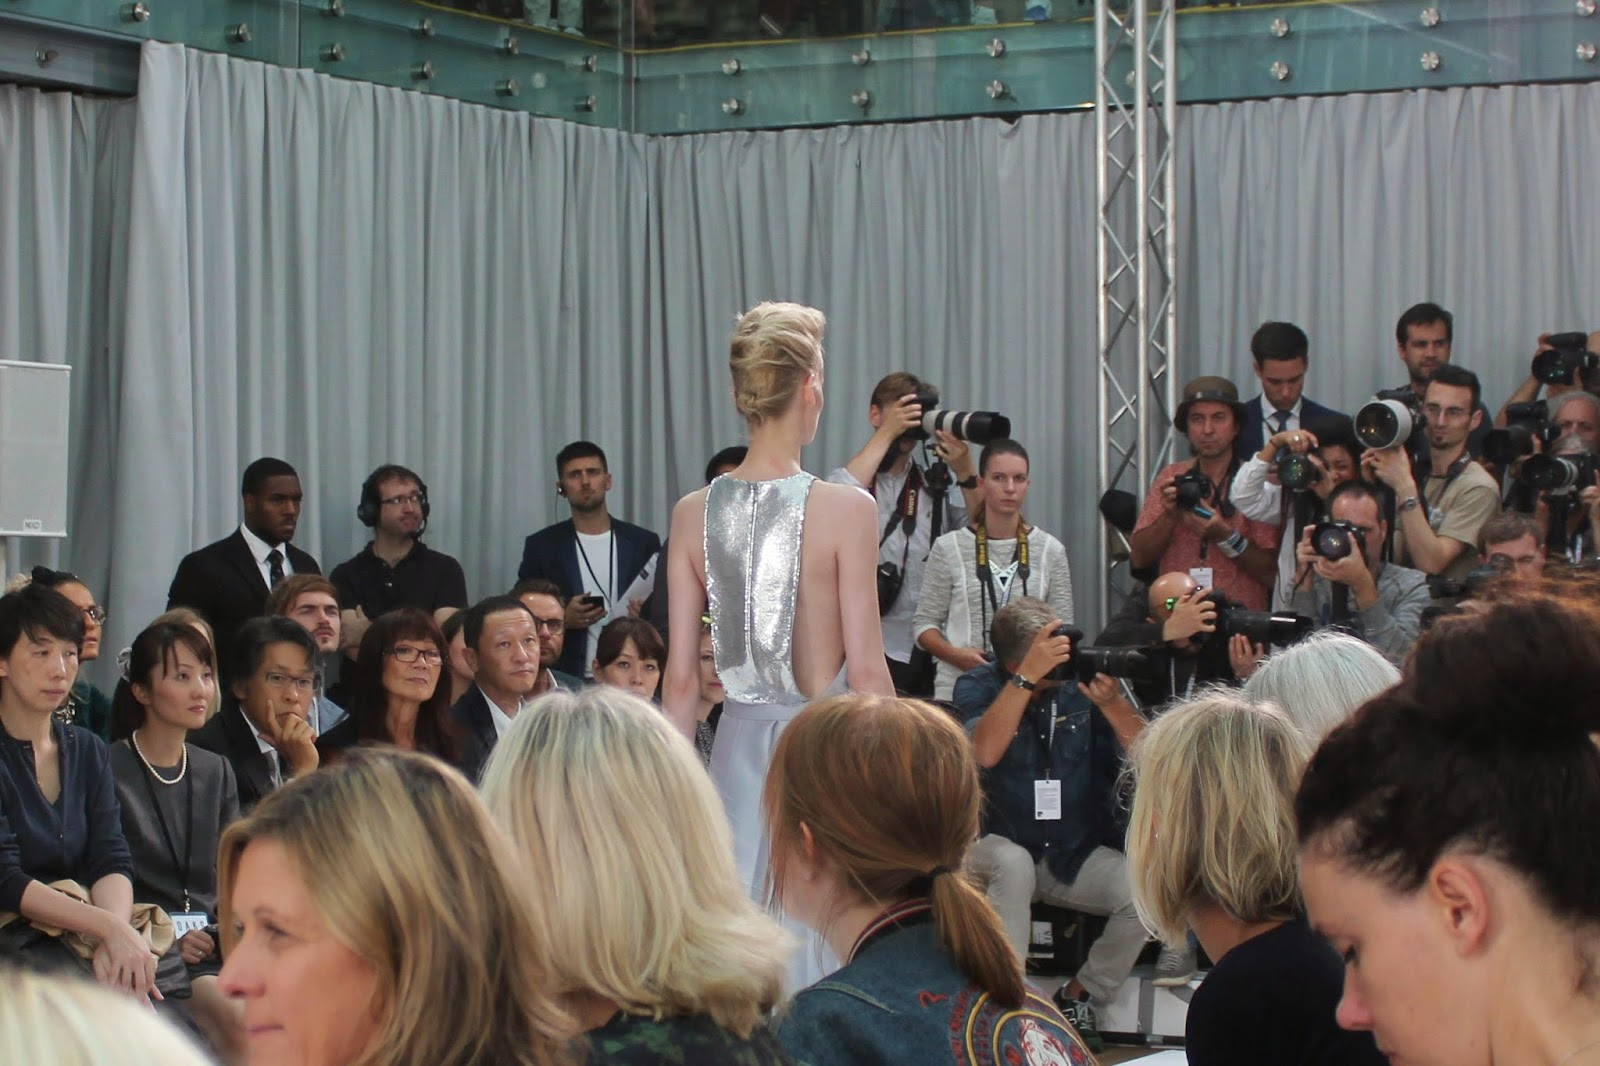 london-fashion-week-2014-lfw-DAKS-show-catwalk-spring-summer-2015-models-clothes-fashion-frow-royal-opera-house-dress-sequins